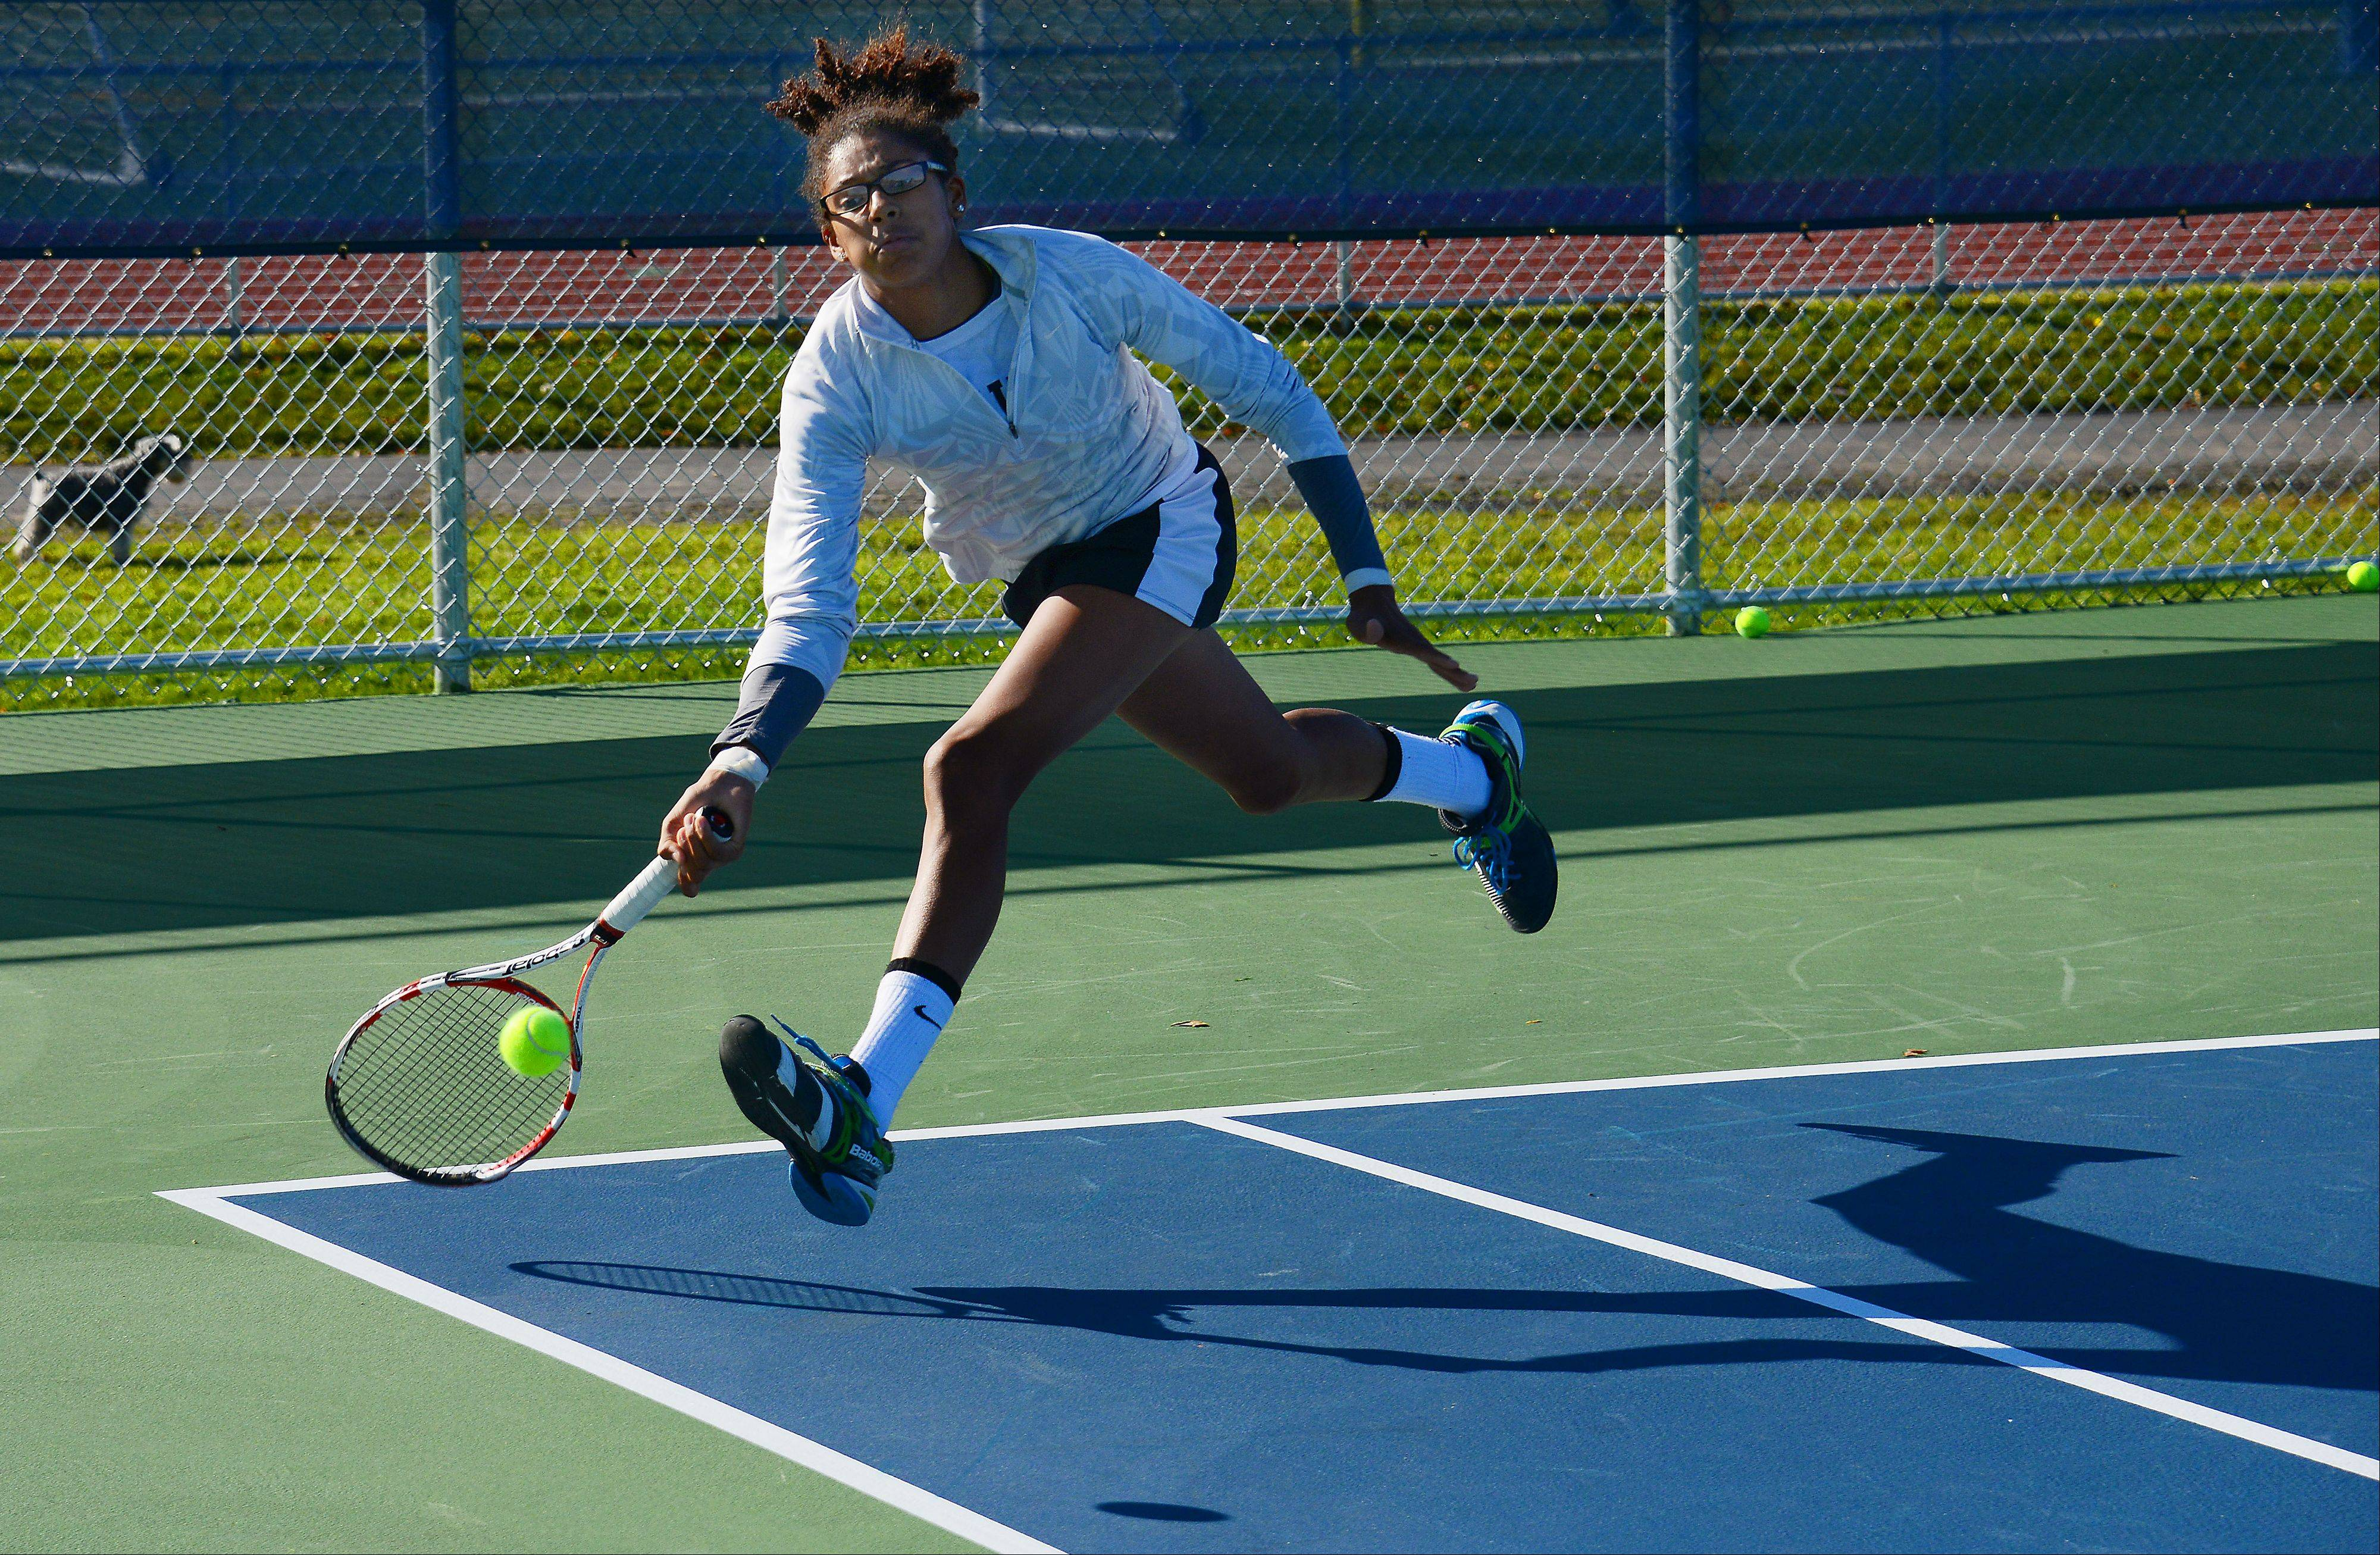 Wheaton Warrenville South�s Keisha Clousing returns a serve in the state girls tennis semifinals singles matchup against Brienne Minor of Carmel High School at Buffalo Grove High School on Saturday.